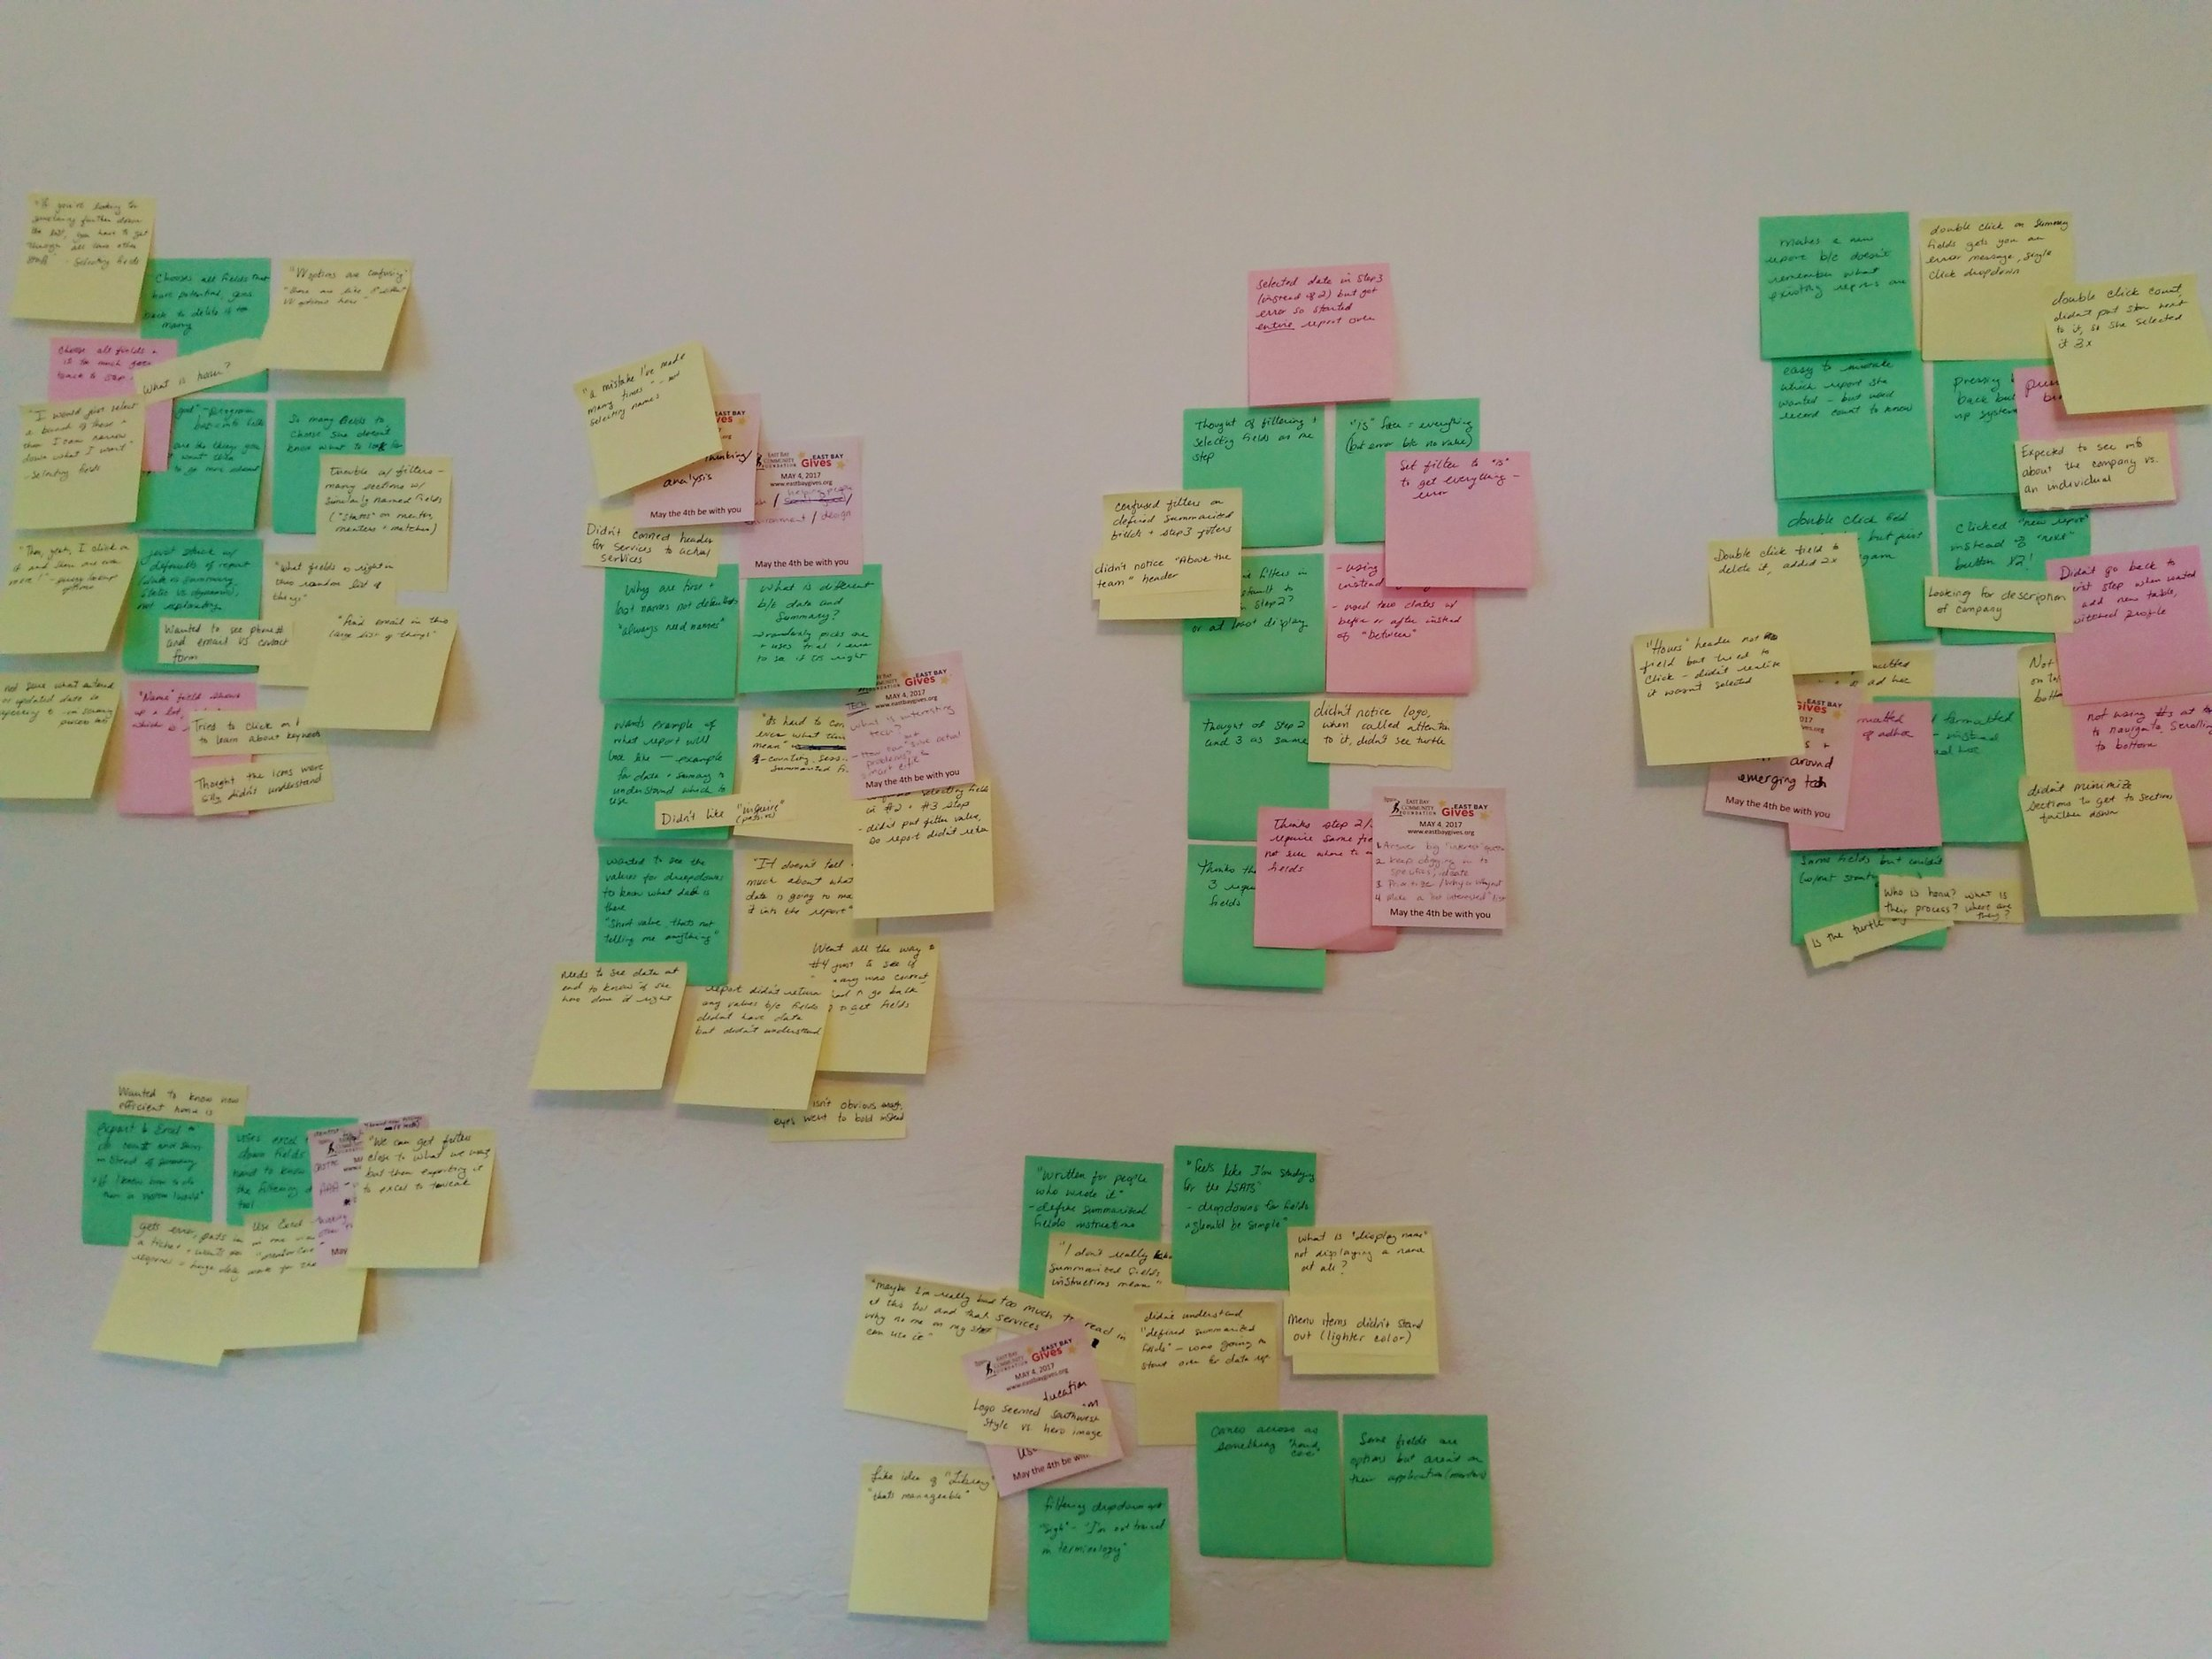 Initial affinity diagramming, sorting quotes and observations into themes.